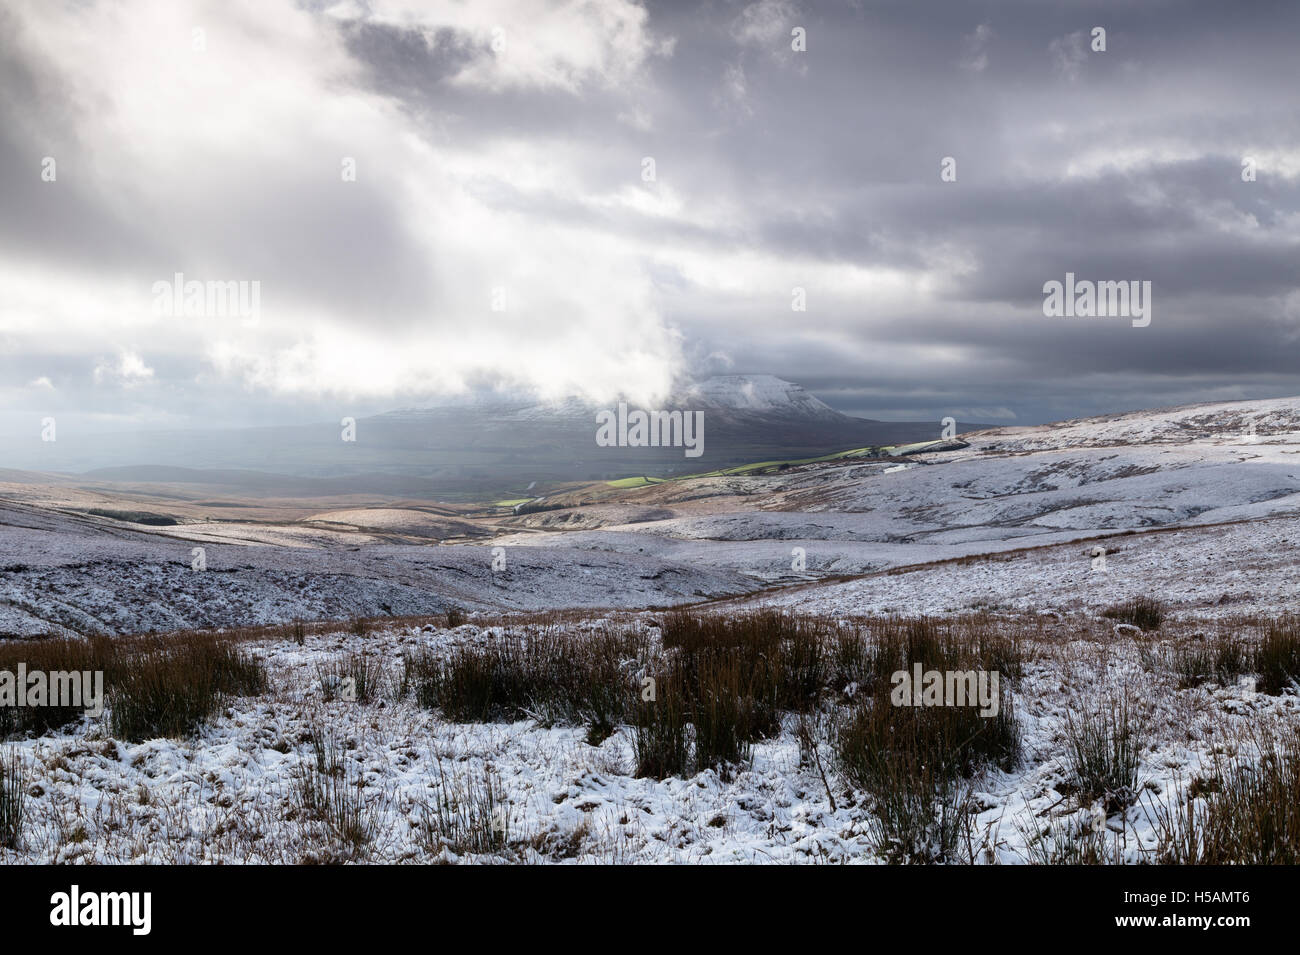 View of snow covered Ingleborough, one of the 3 Peaks in the Yorkshire Dales National Park, England, UK - Stock Image